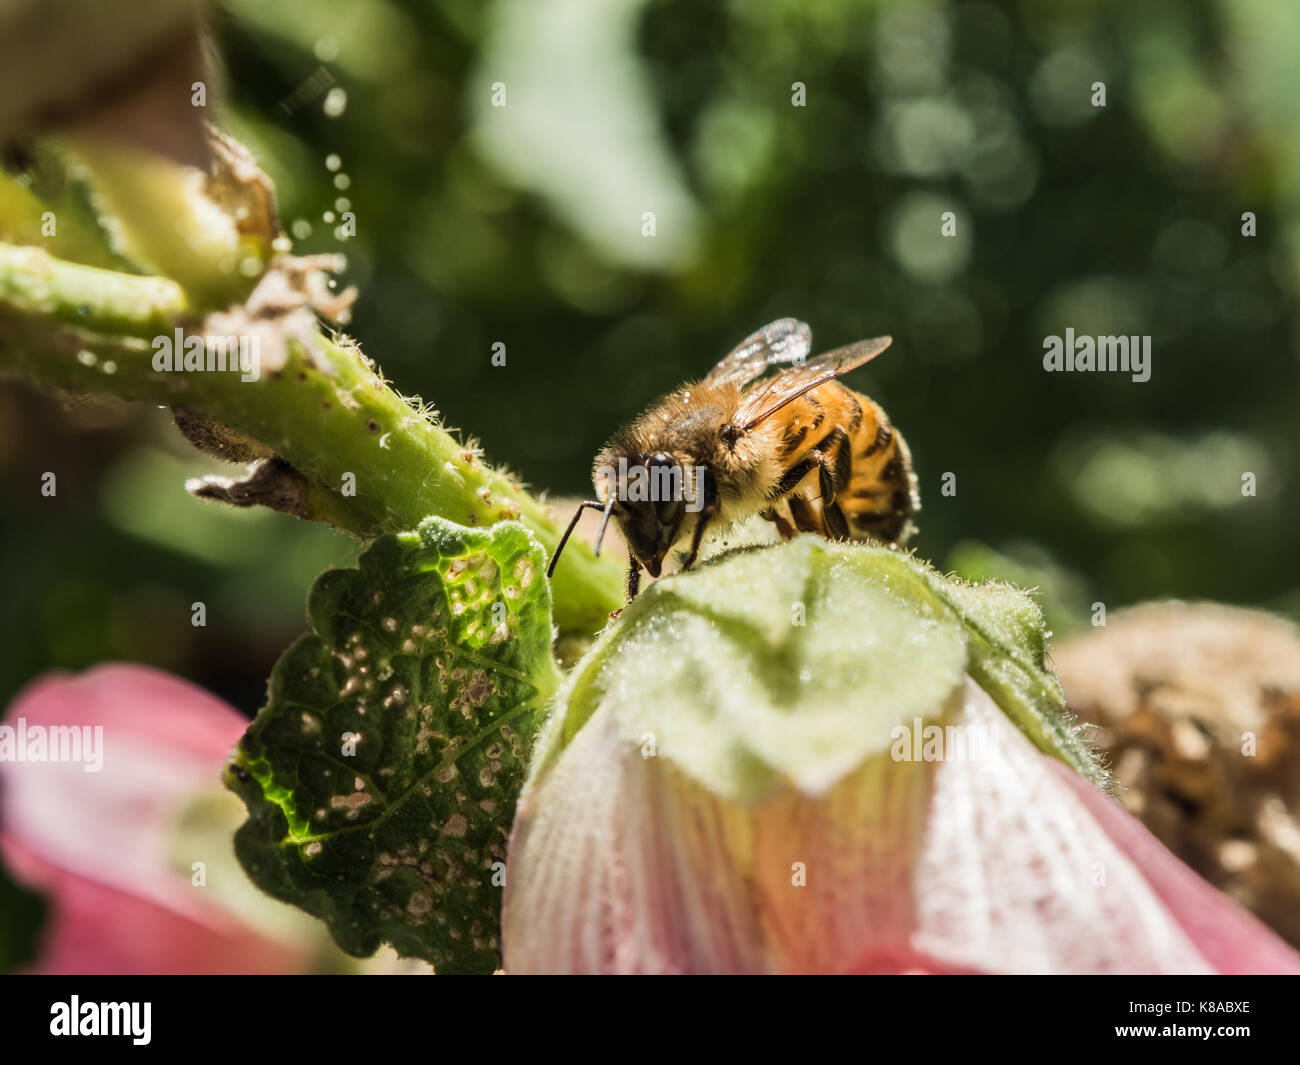 Pollinating. Cute picture of western honey bee. Bee pollinate pink flower. Macro view. Close-up. Green background. - Stock Image